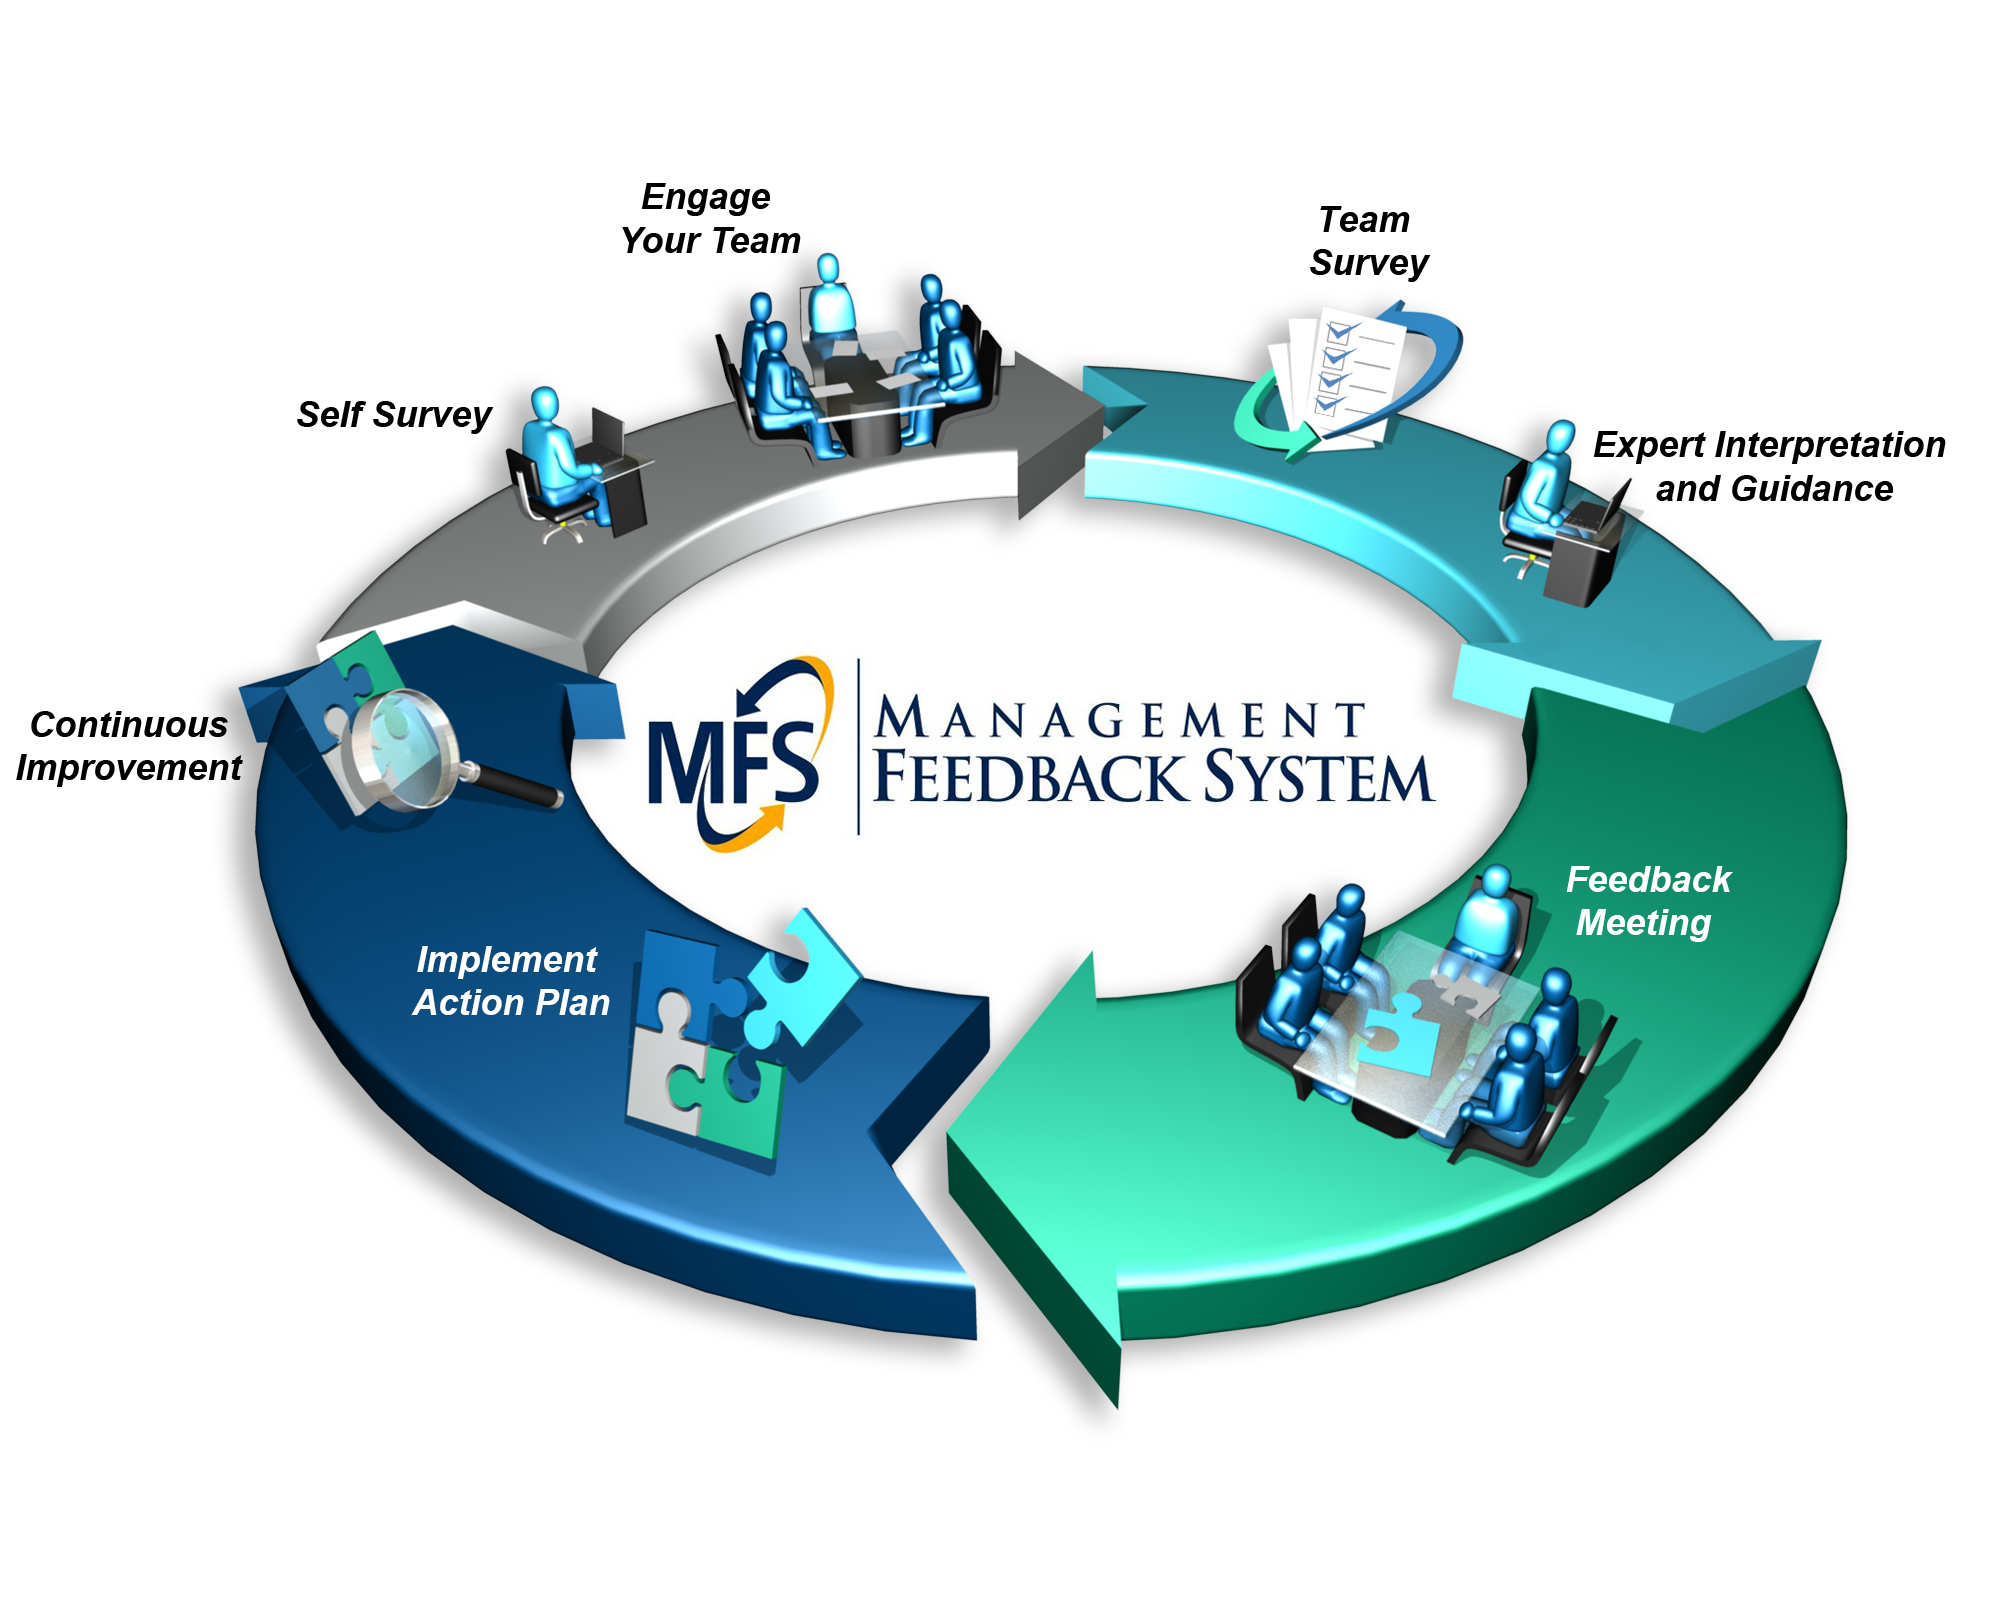 The Management Feedback System's 7 Step Performance Improvement Process